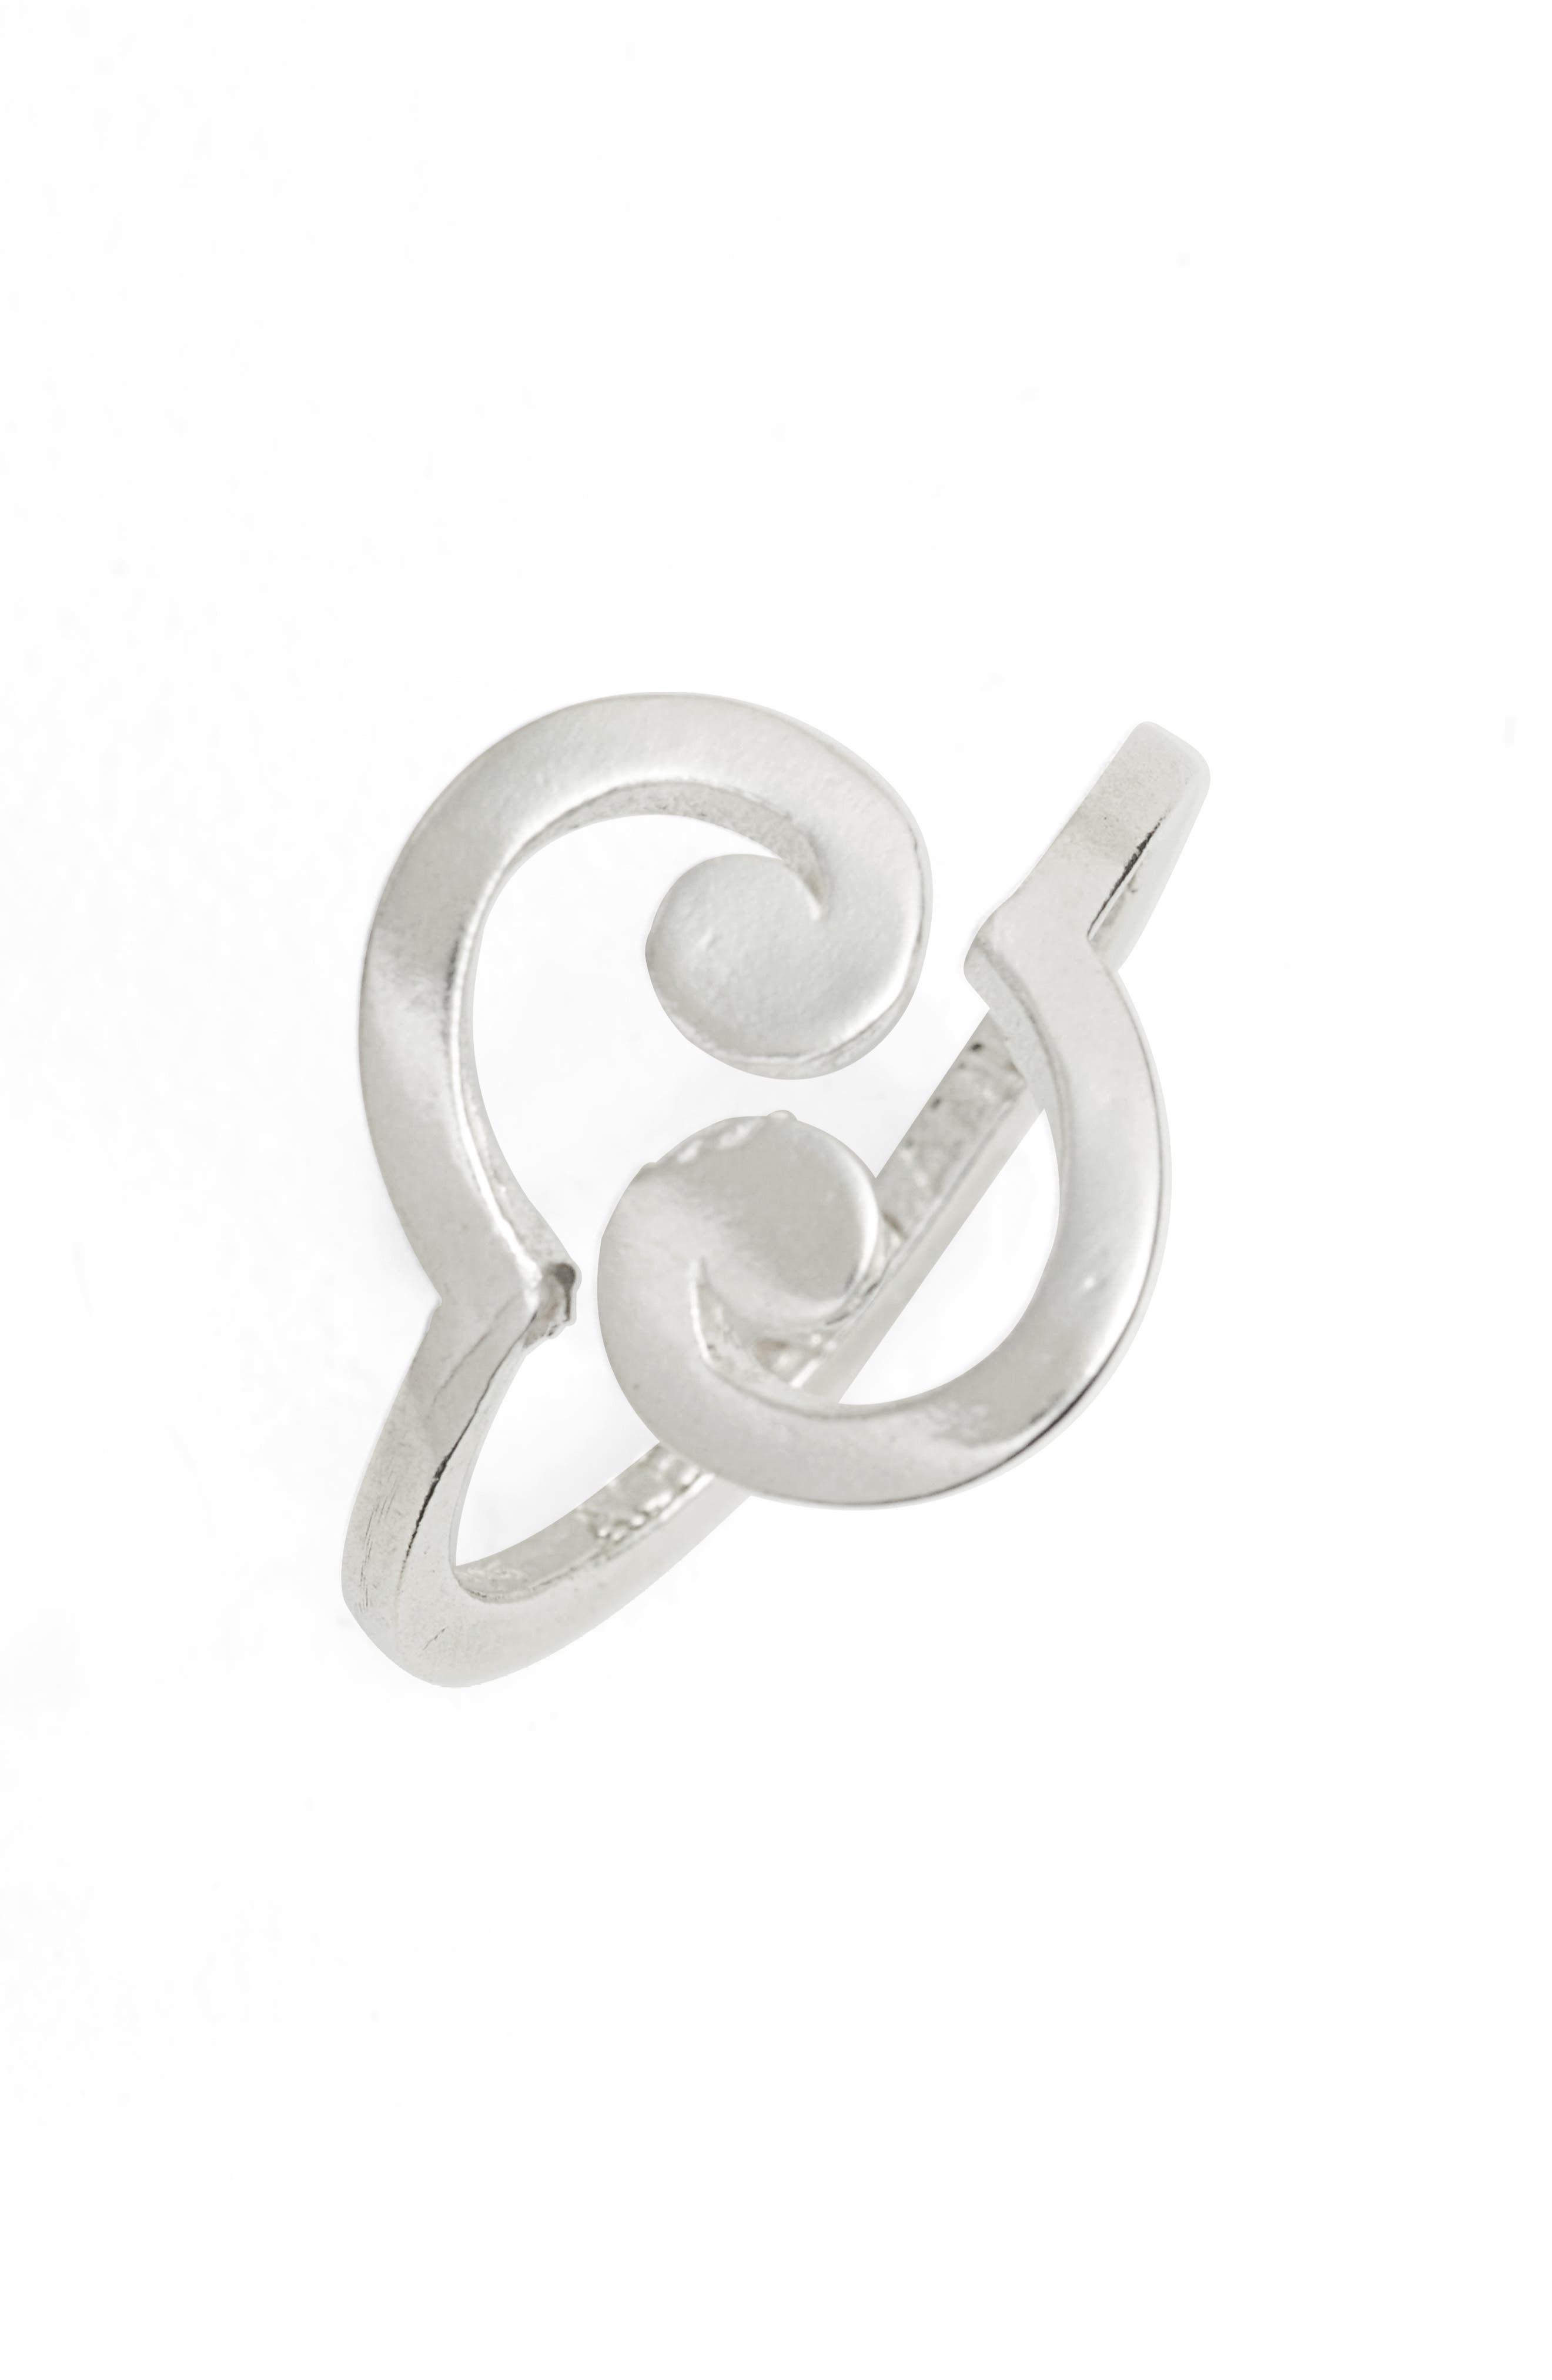 x Disney<sup>®</sup> 'A Wrinkle in Time' Spiral Wrap Ring,                         Main,                         color,